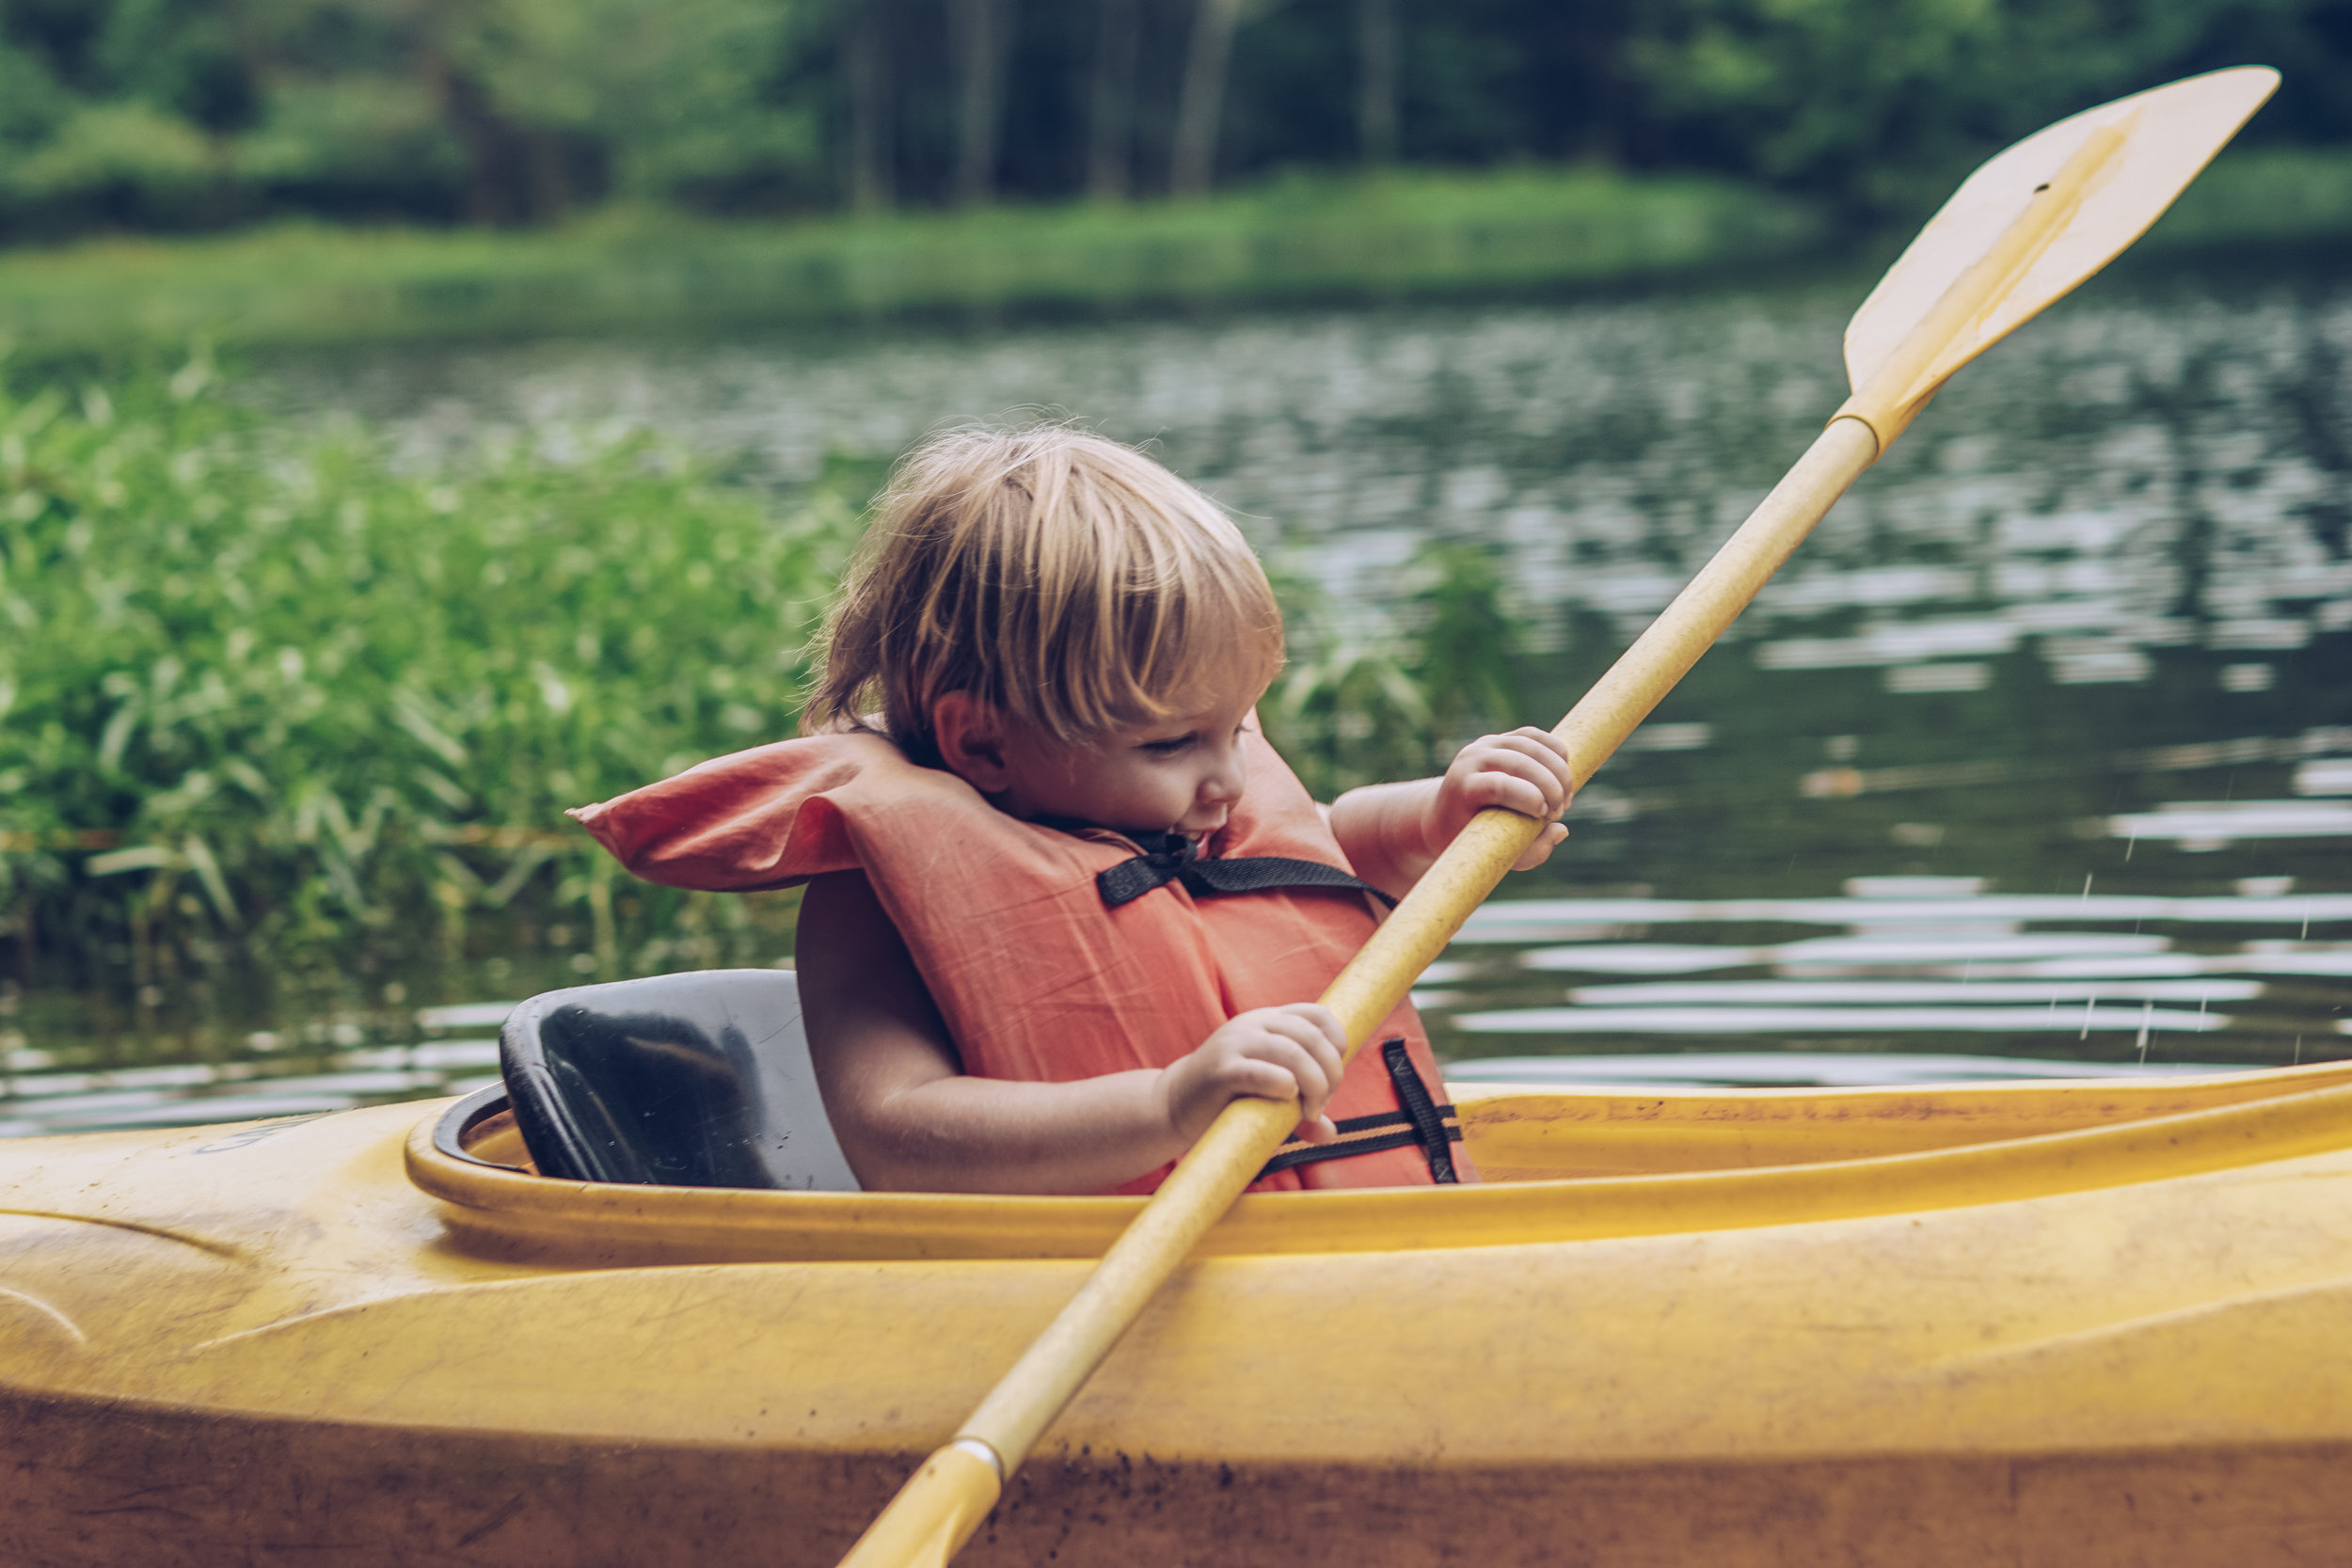 I don't see any problems with tiny Taters paddling a kayak in his oversized life vest